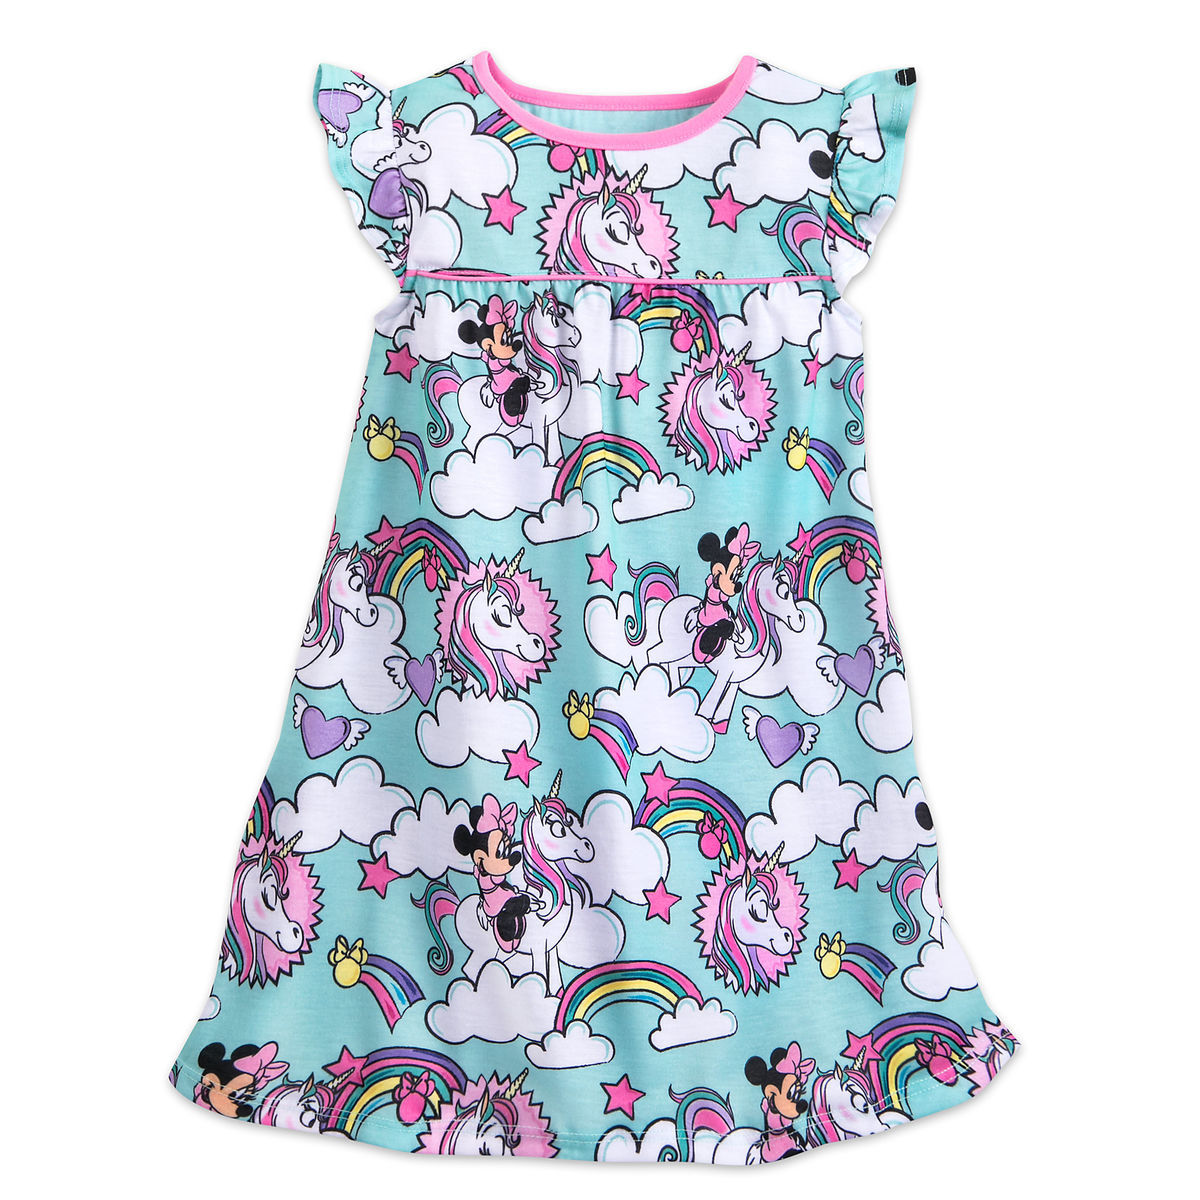 89c09c27f70a Minnie Mouse Unicorn Nightshirt for Girls